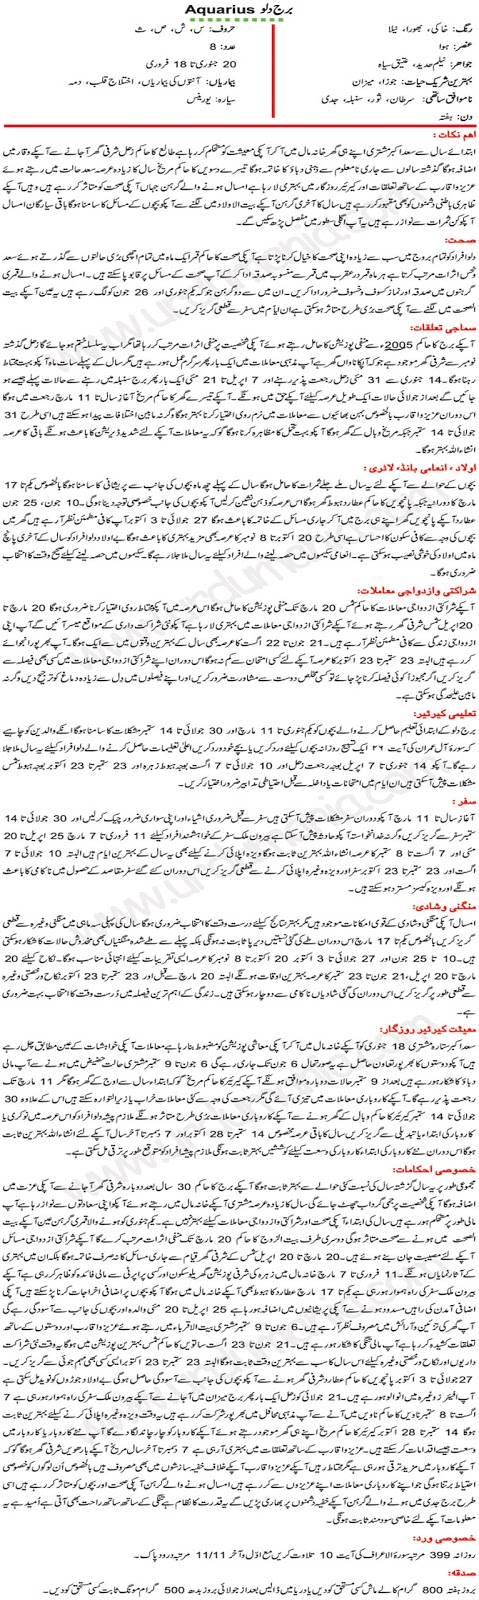 in urdu astrology horoscopes horoscope in urdu http horoscope urdusky . 479 x 1600.Urdupoint Horoscope Weekly